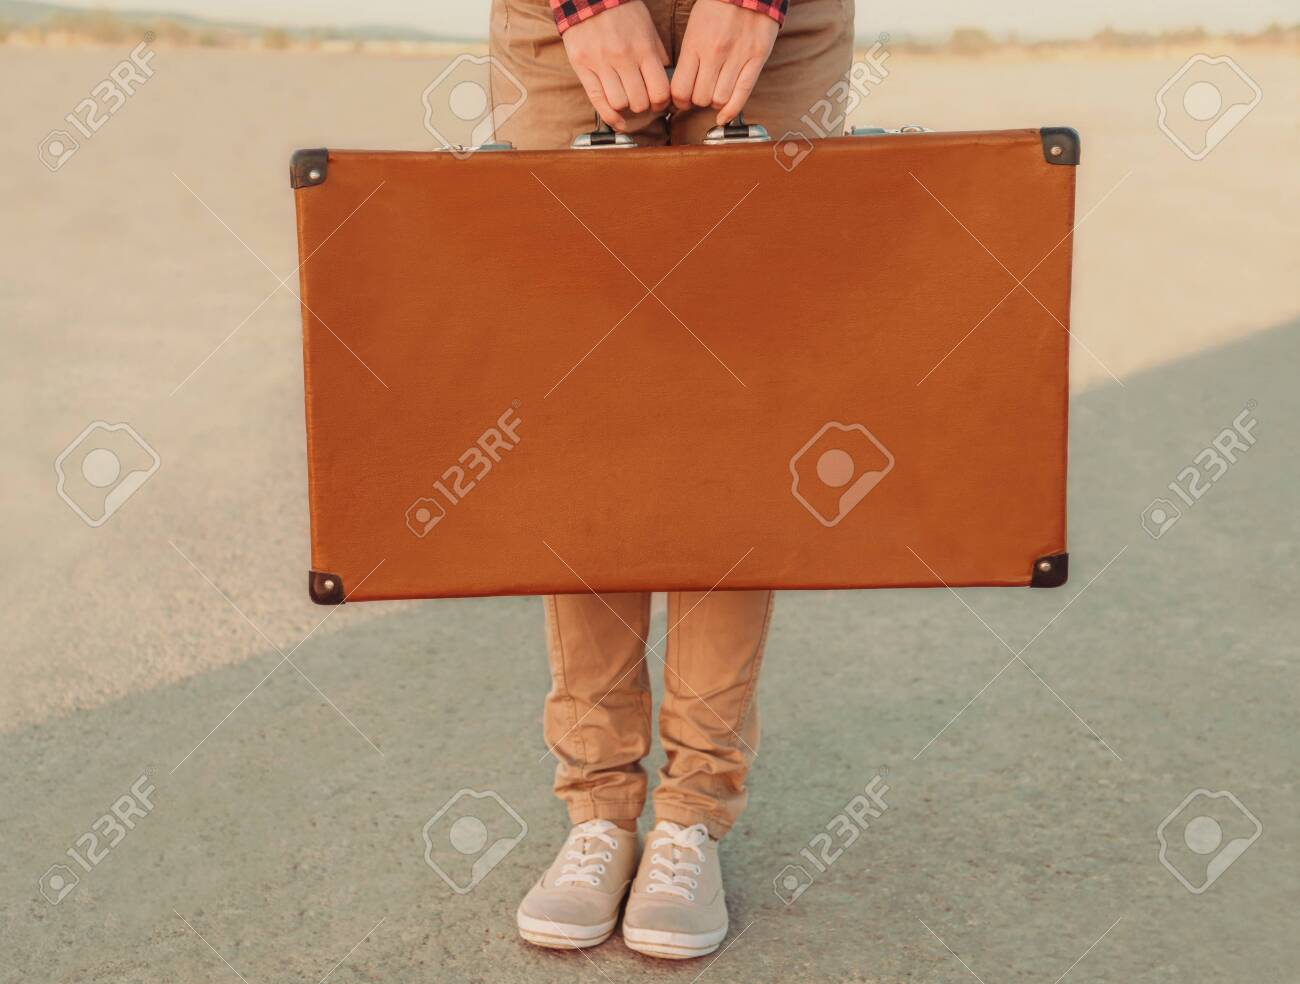 Traveler holding a suitcase, view of hands. Space for text on suitcase - 128517896